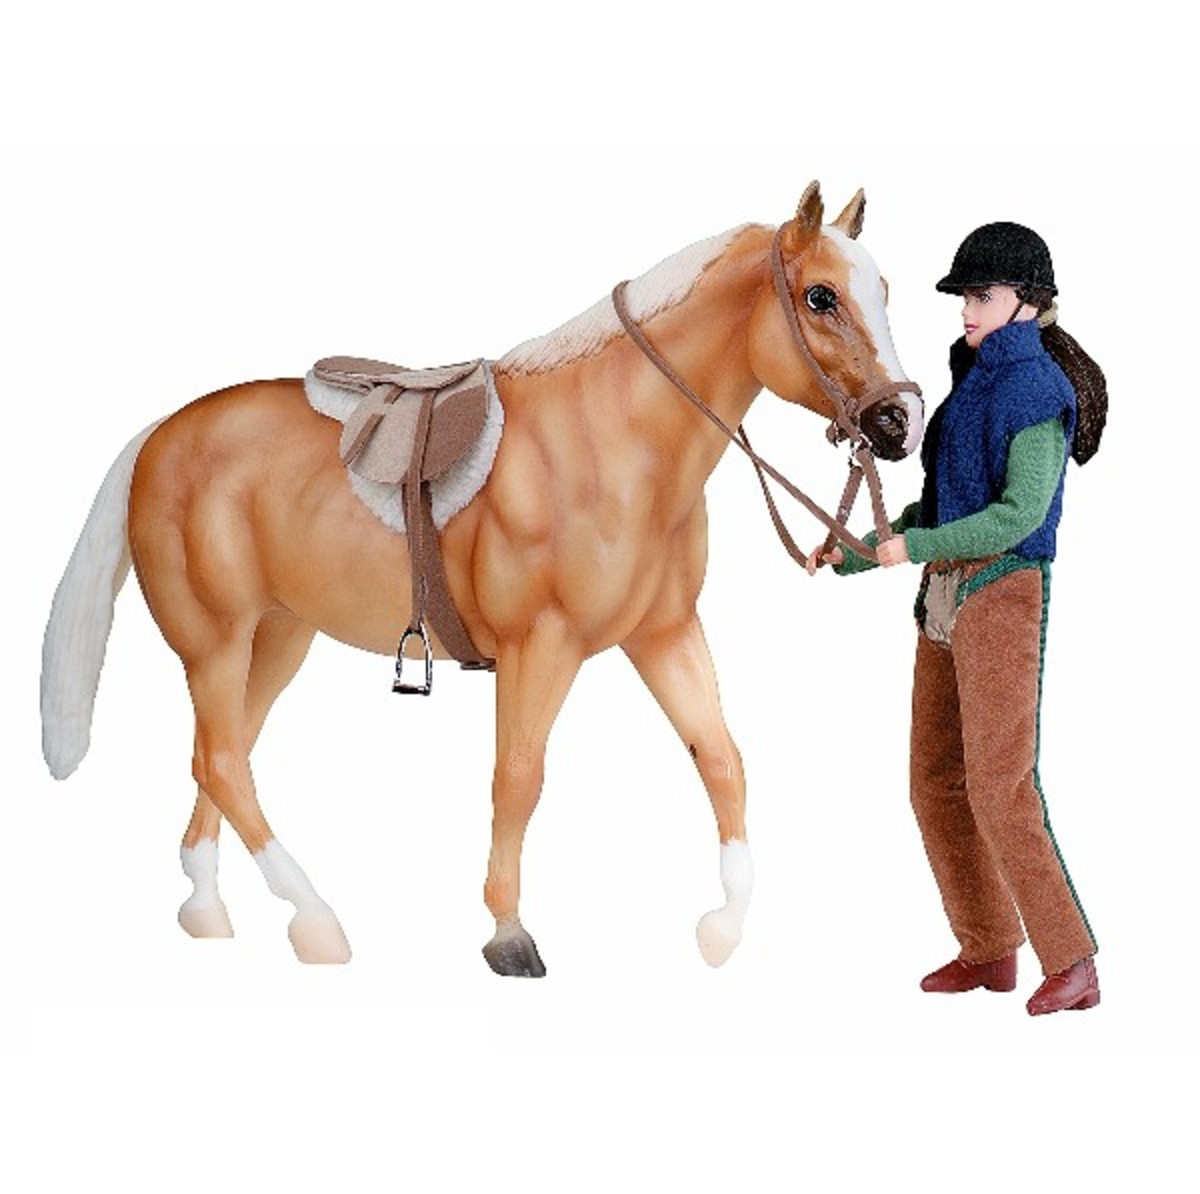 There`s no better introduction to the exciting world of model horses than Breyer® Animal Creations® Let`s Go Riding Gift Set. Start your collection with this fully tacked adorable palomino American Quarter Horse and smartly attired English equestrian